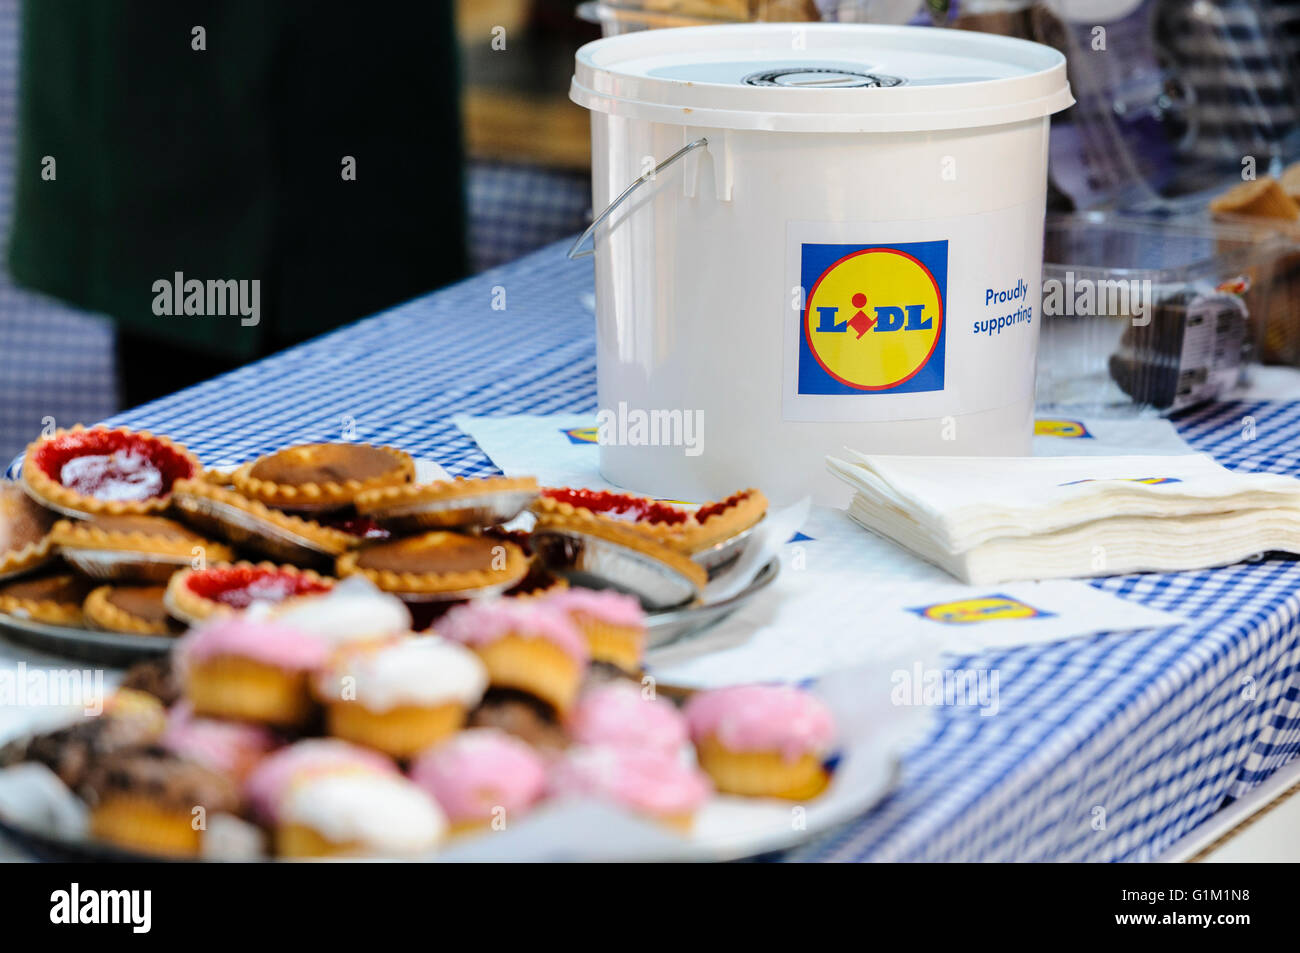 A charity collection box from Lidl on a table with buns Stock Photo